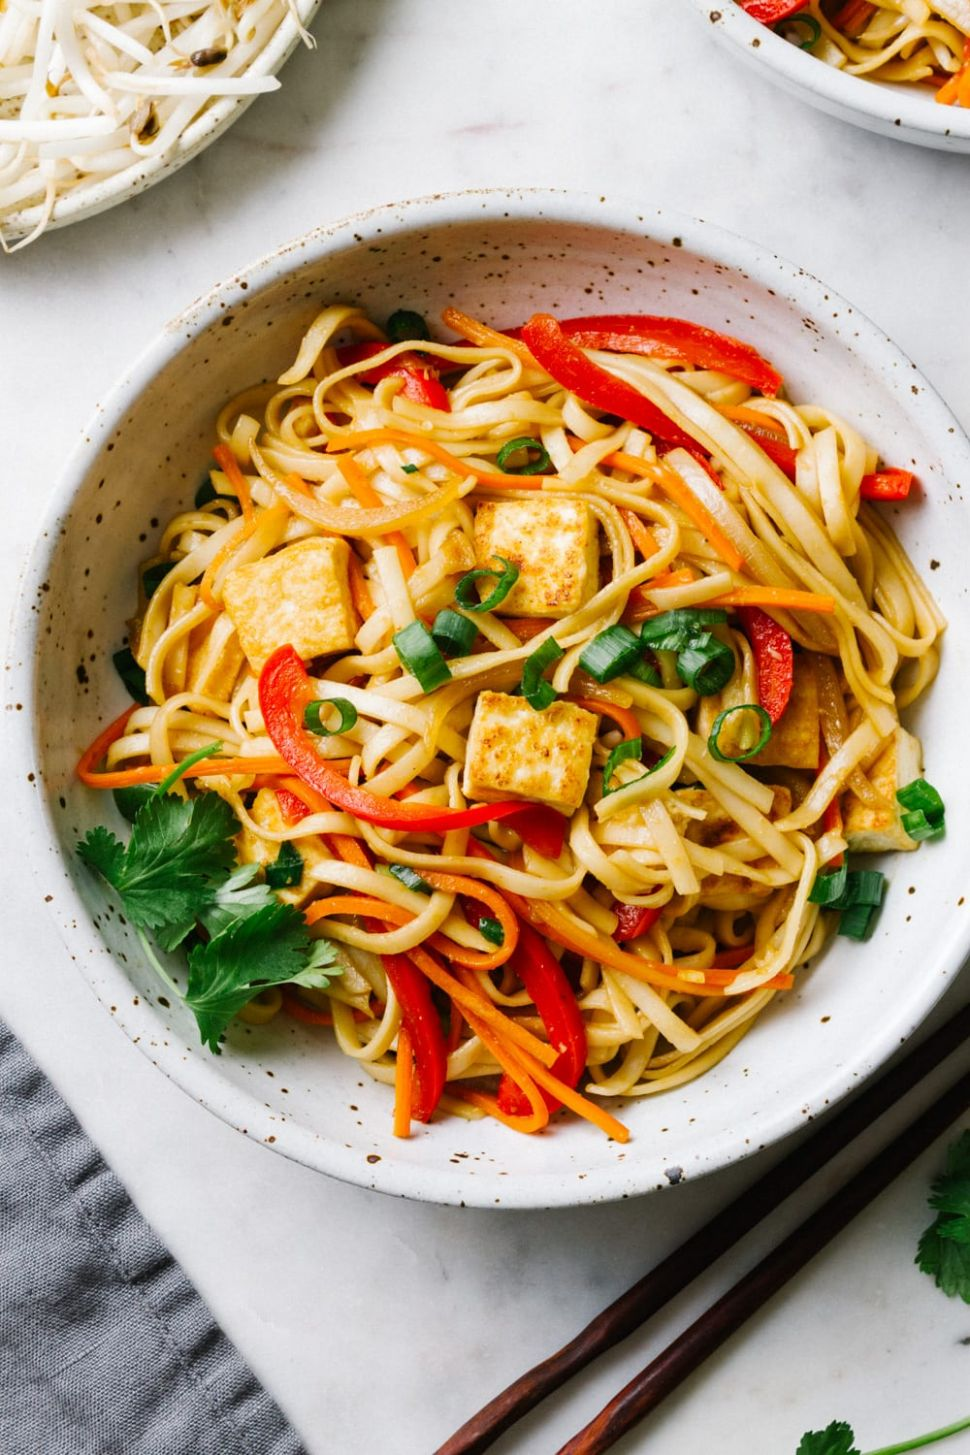 VEGETABLE LO MEIN WITH CRISPY TOFU - Recipes Vegetable Lo Mein